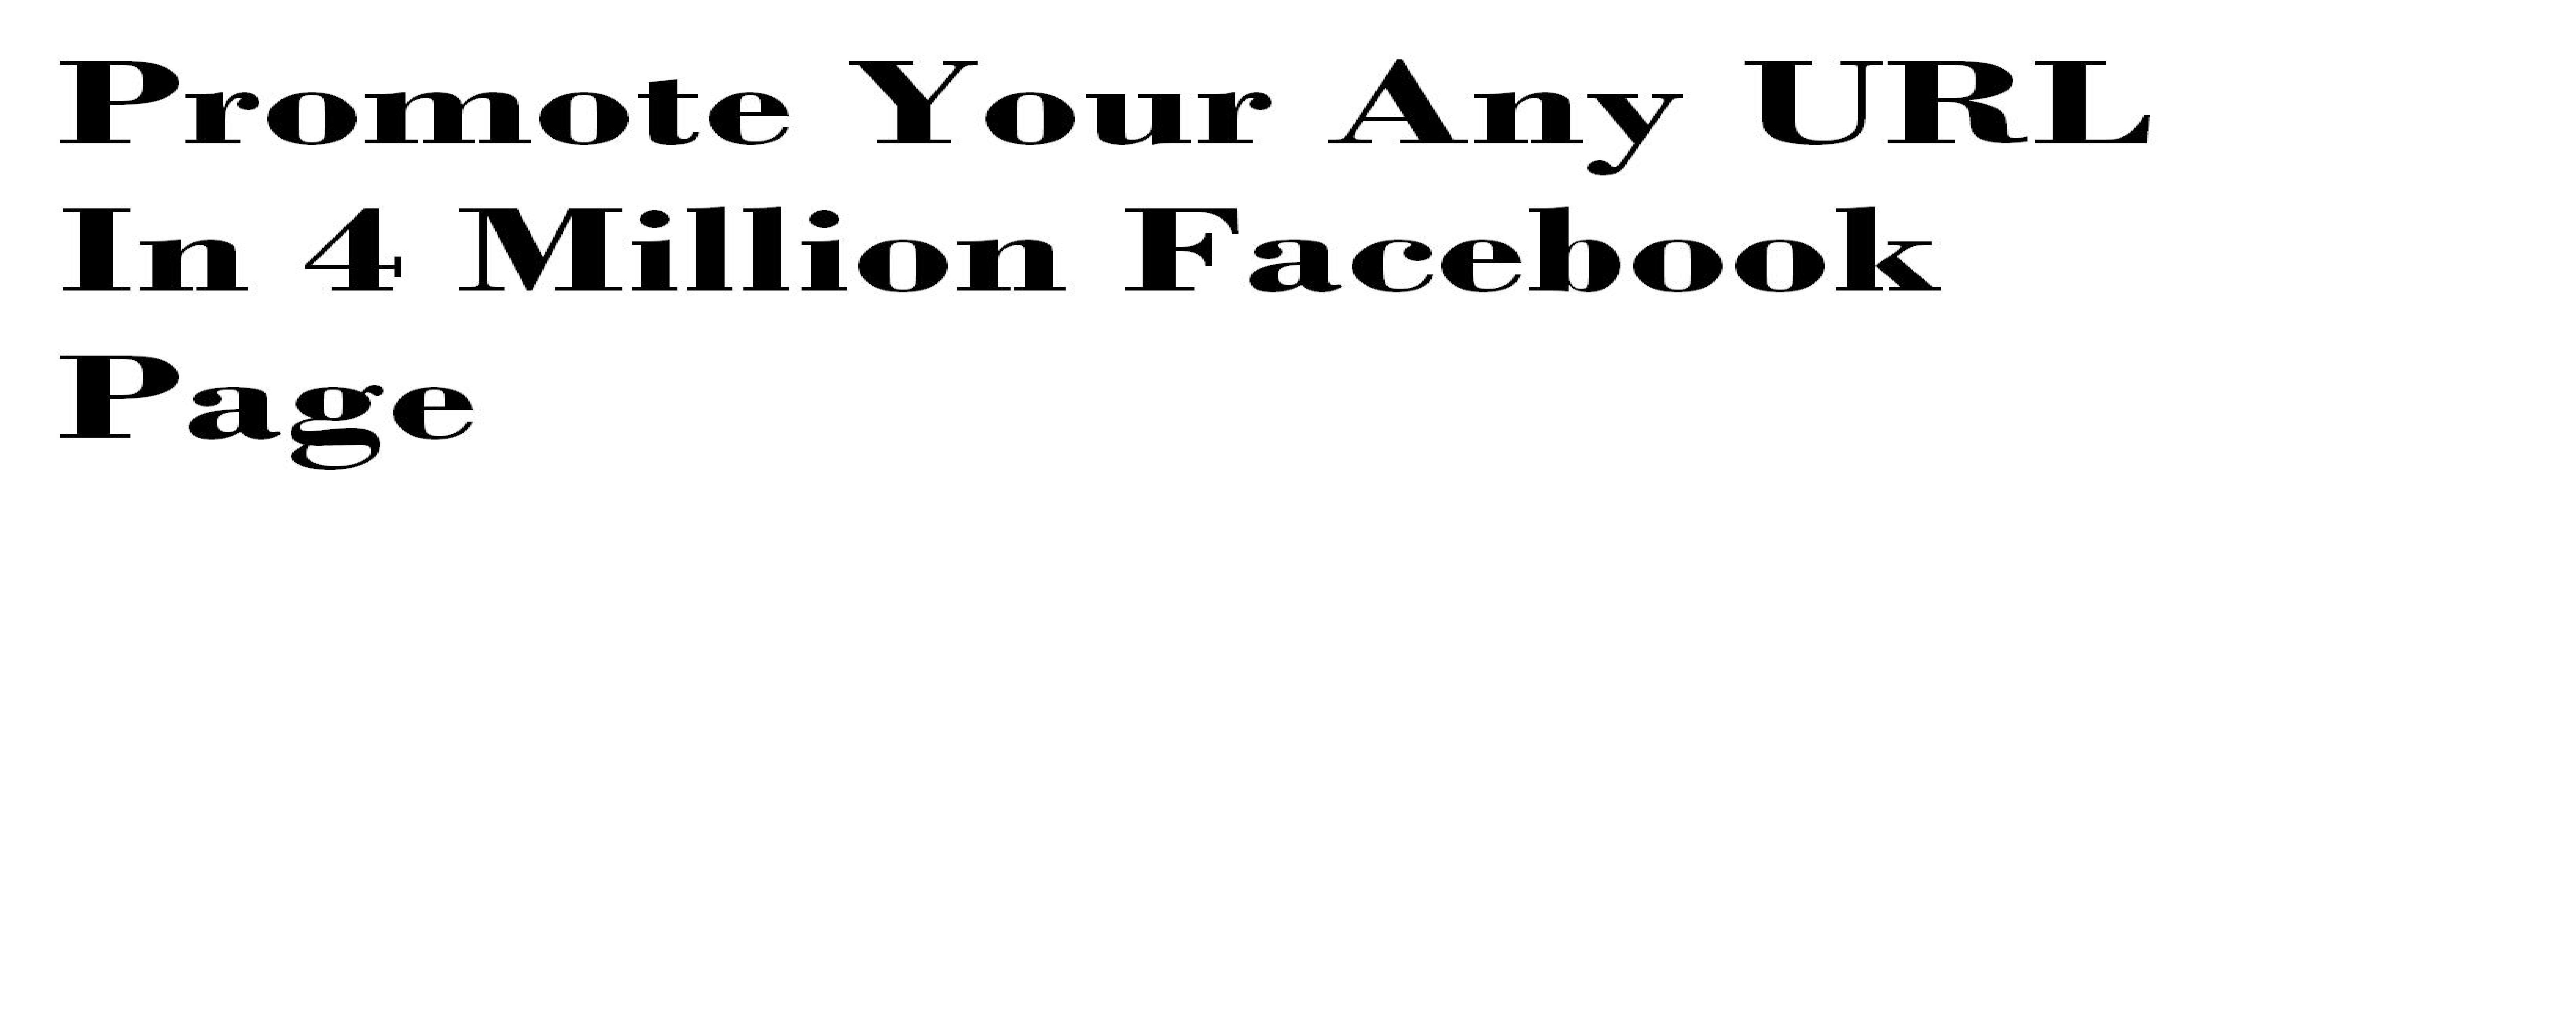 promote your any URL in 4 million Facebook page